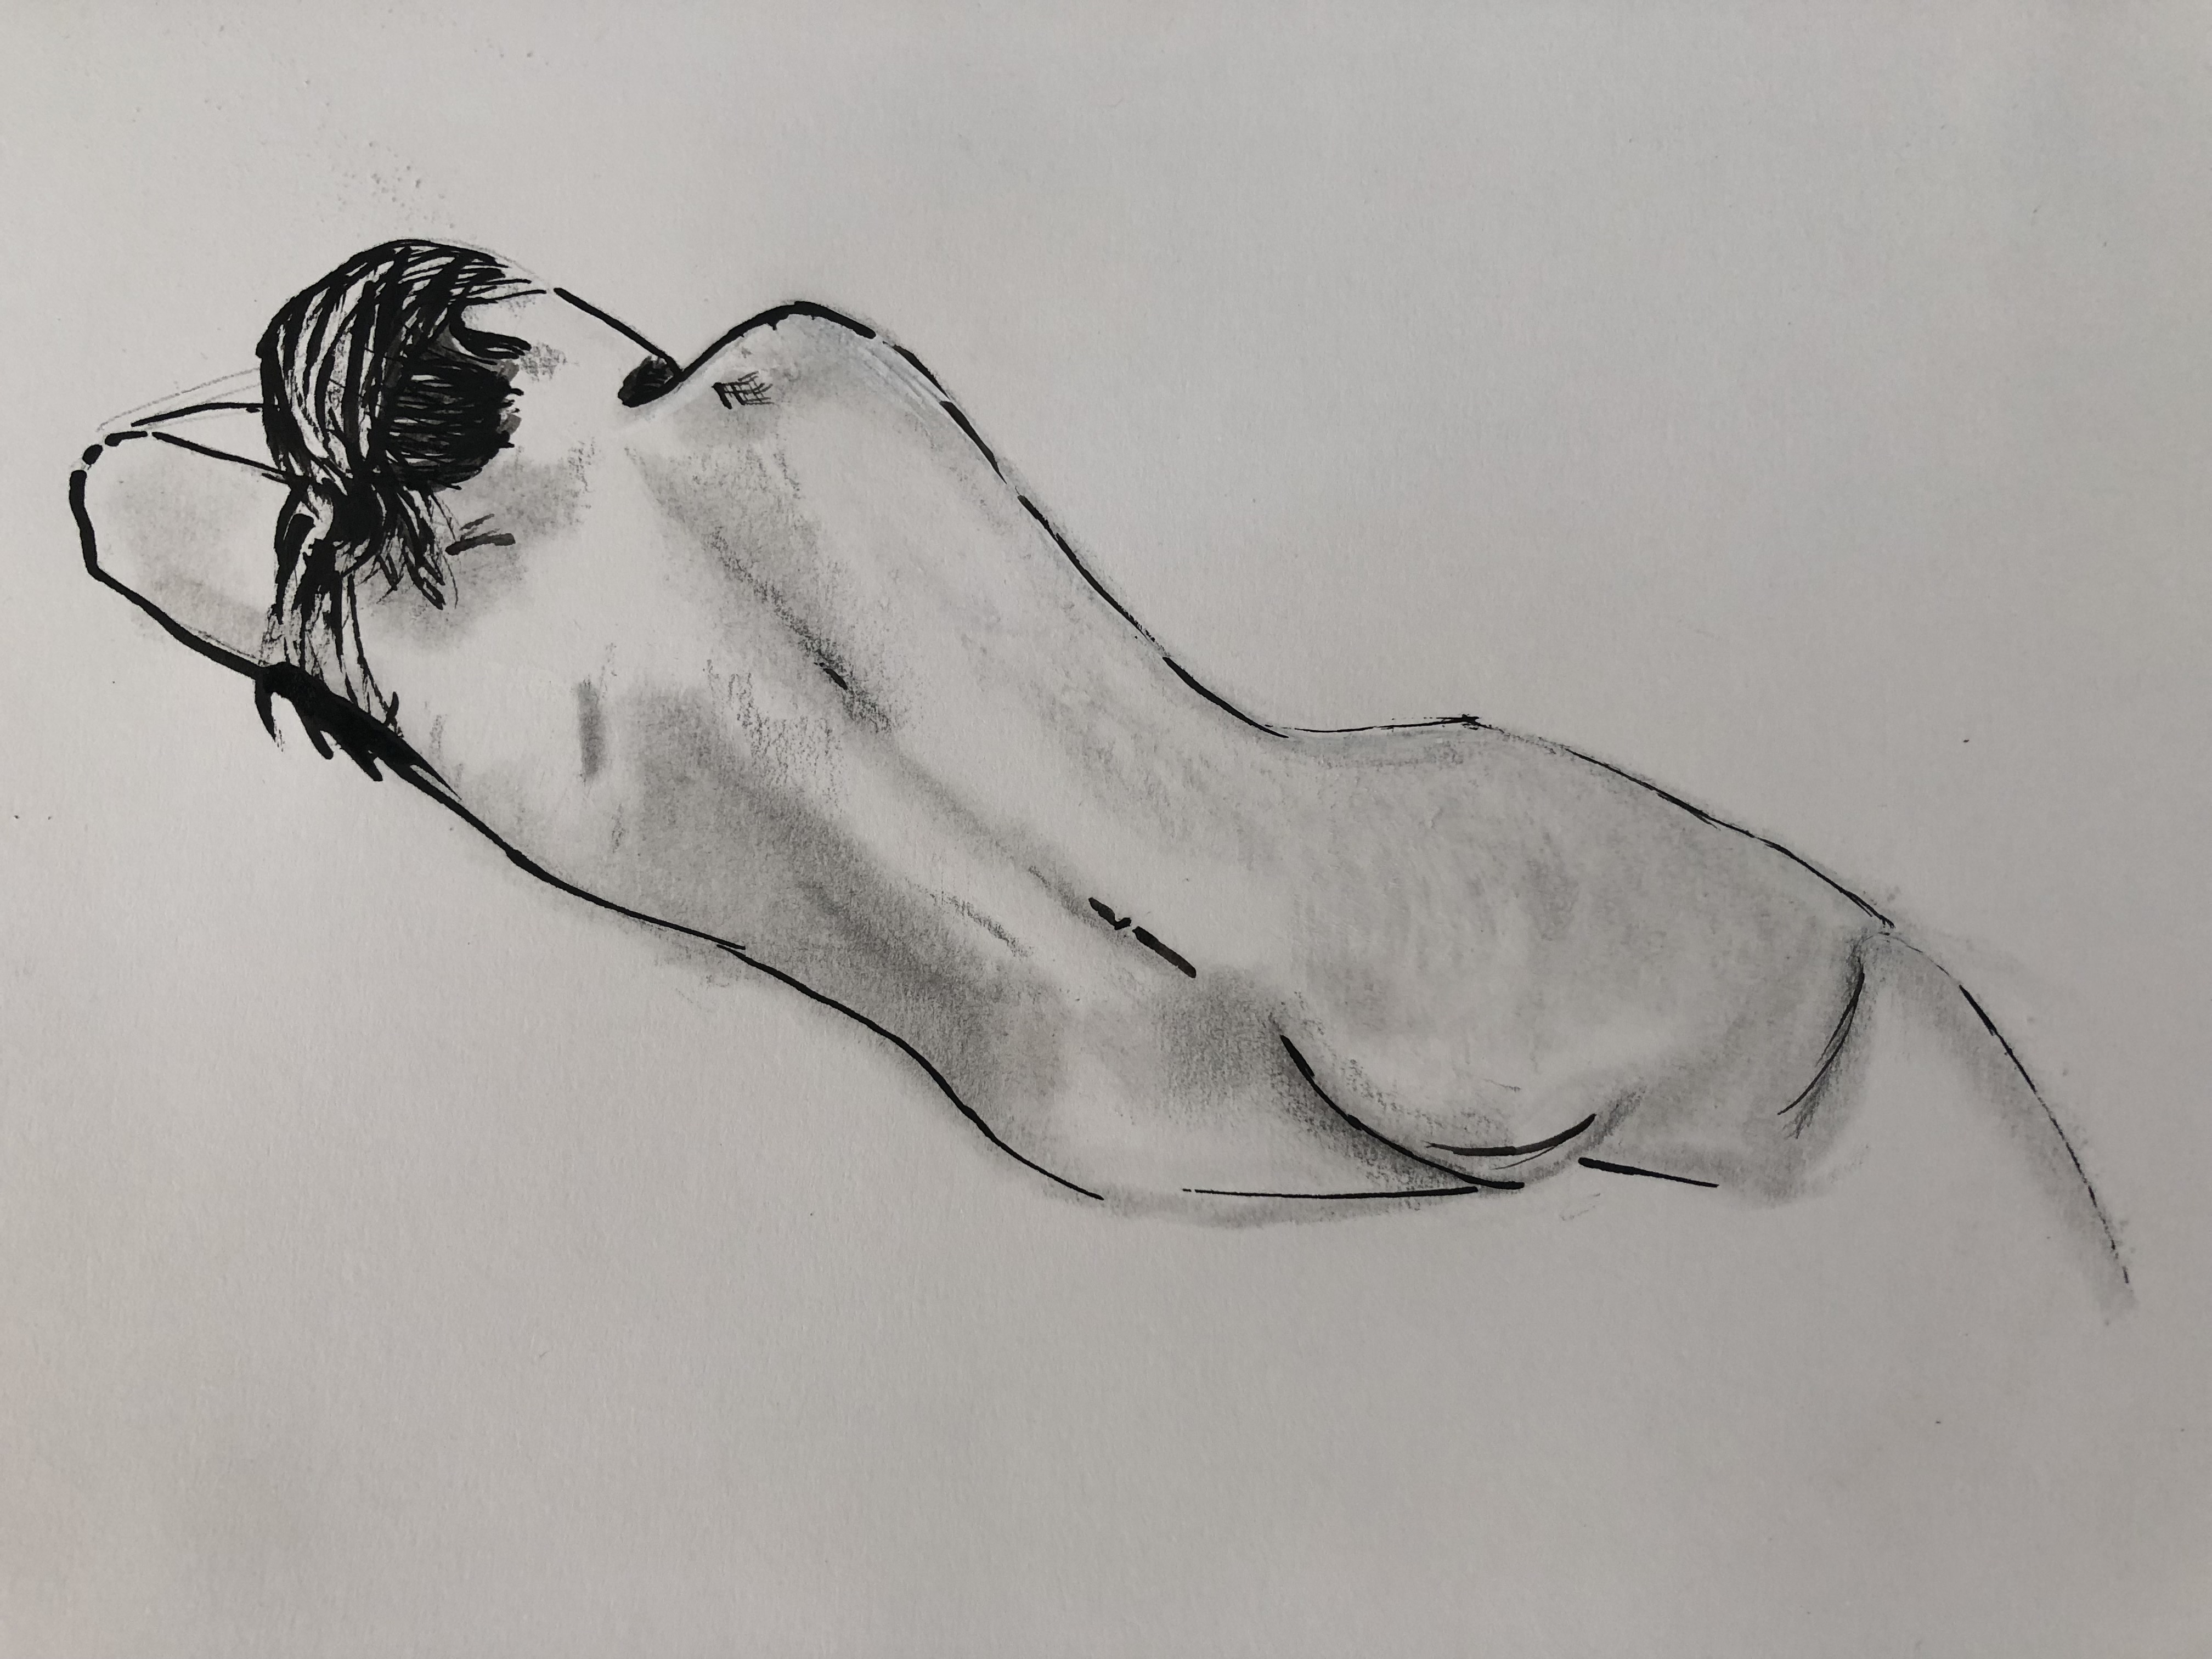 ink and pencil